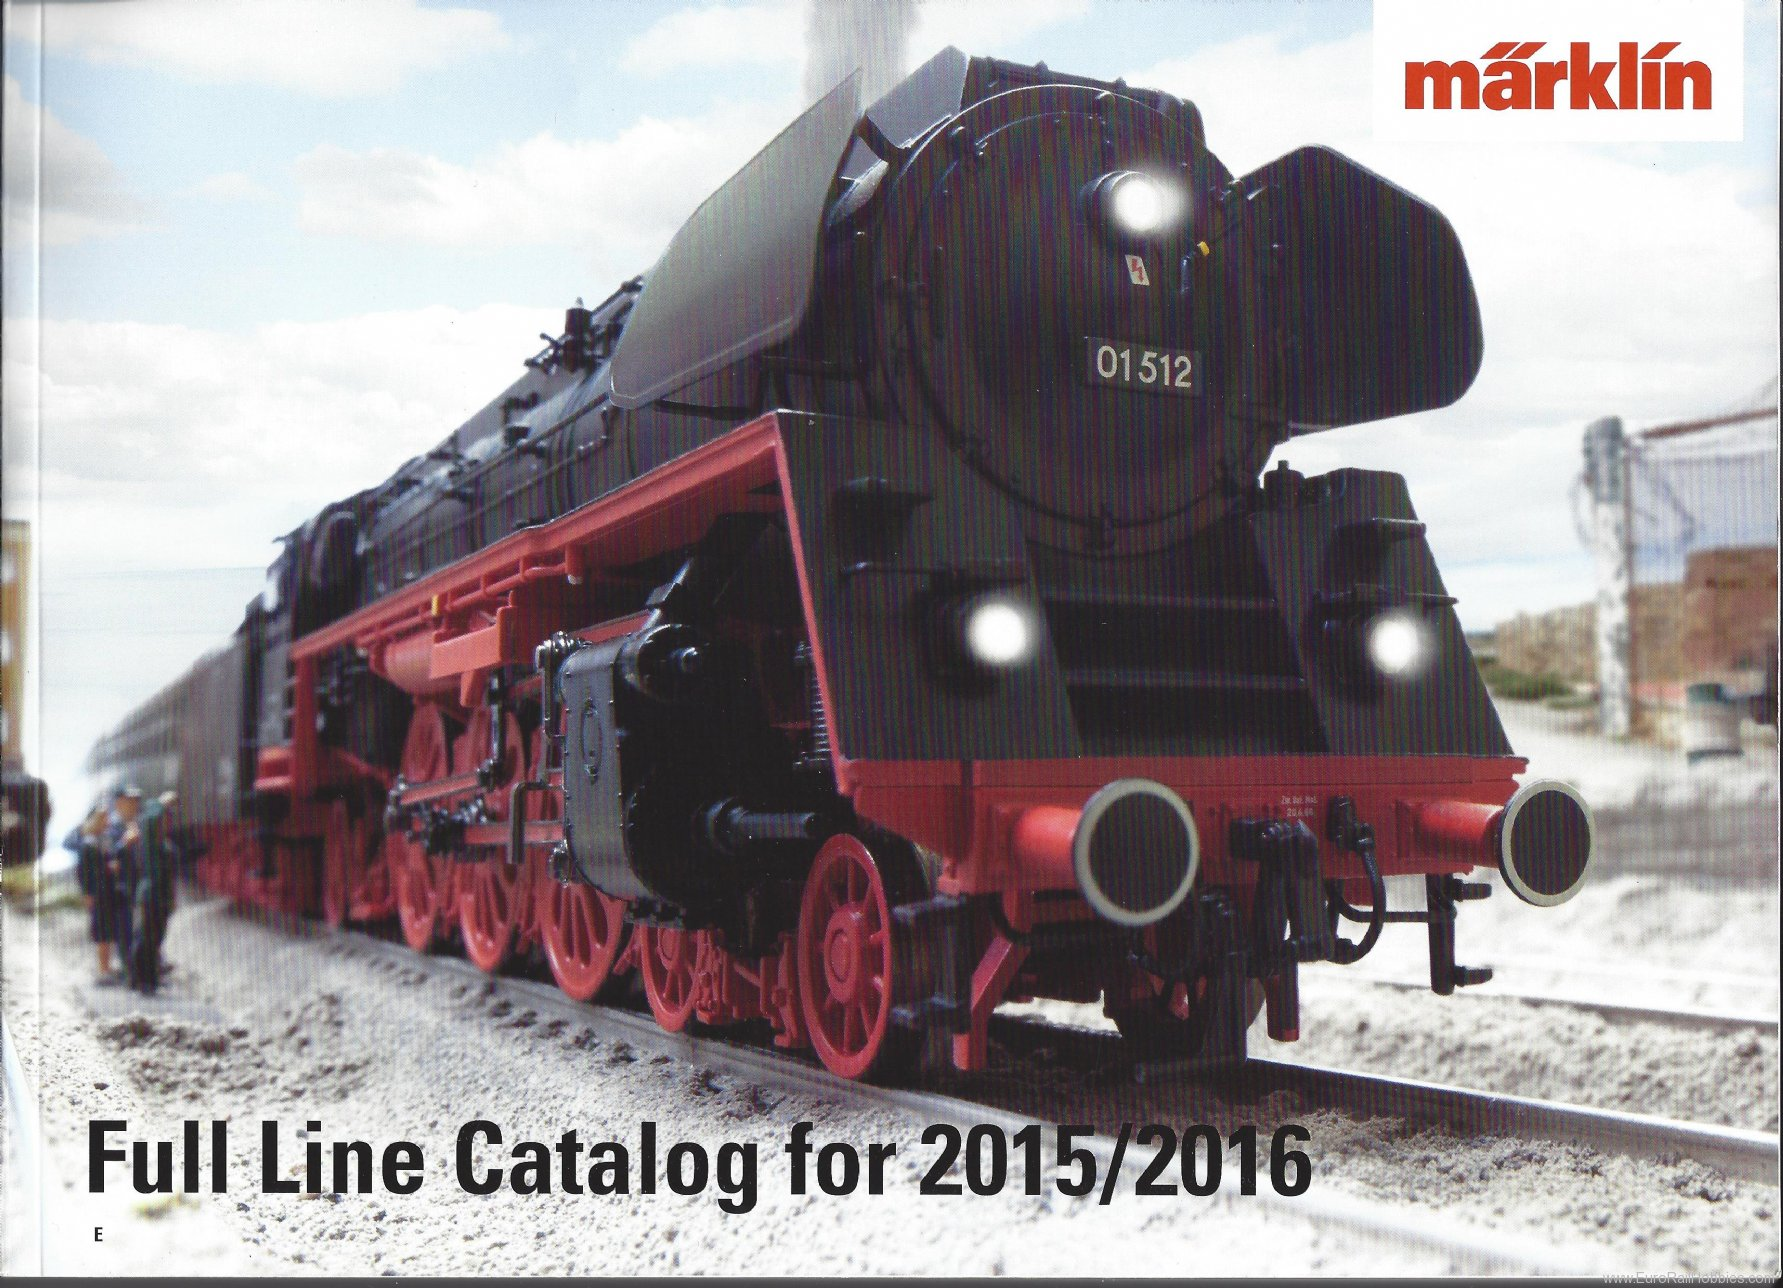 Marklin 15731 Marklin 2015 16 Full Line Catalog - English